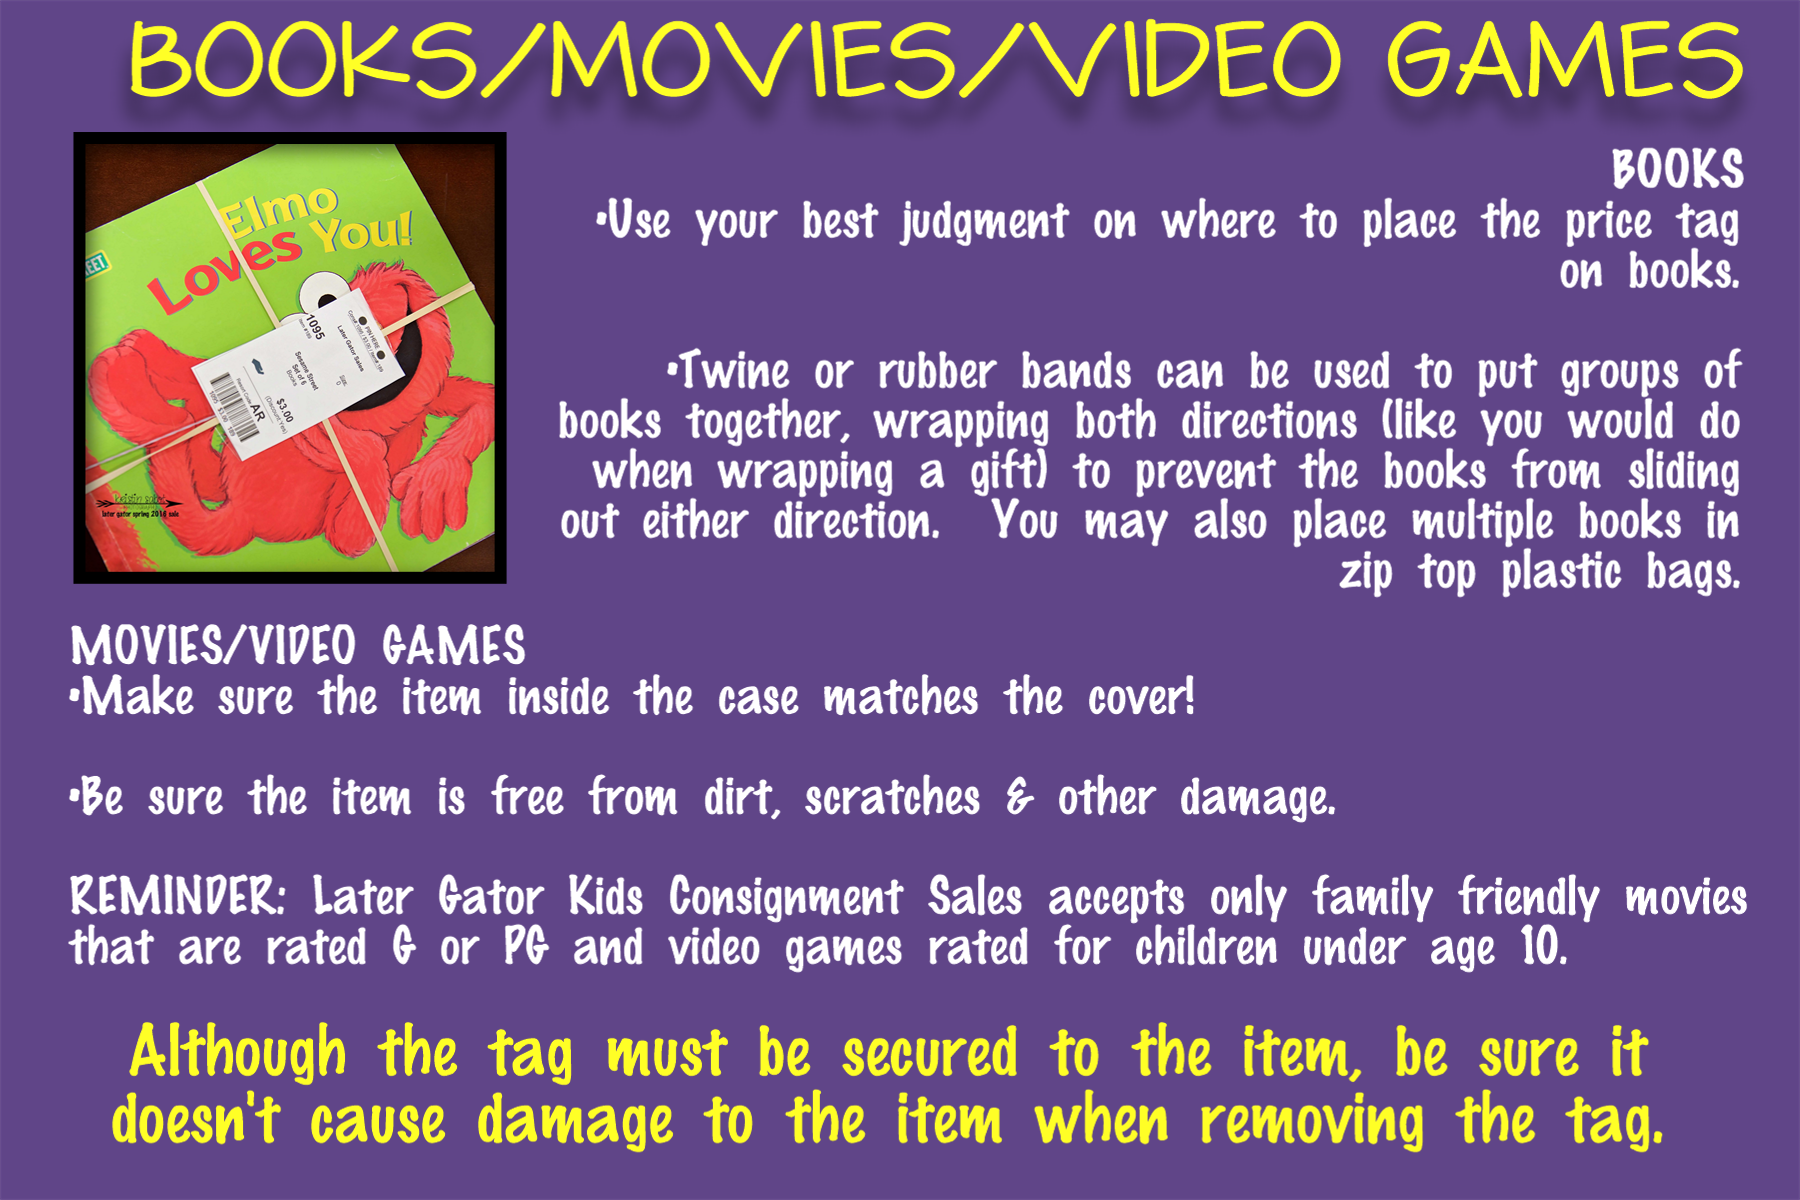 books movies videogames.png